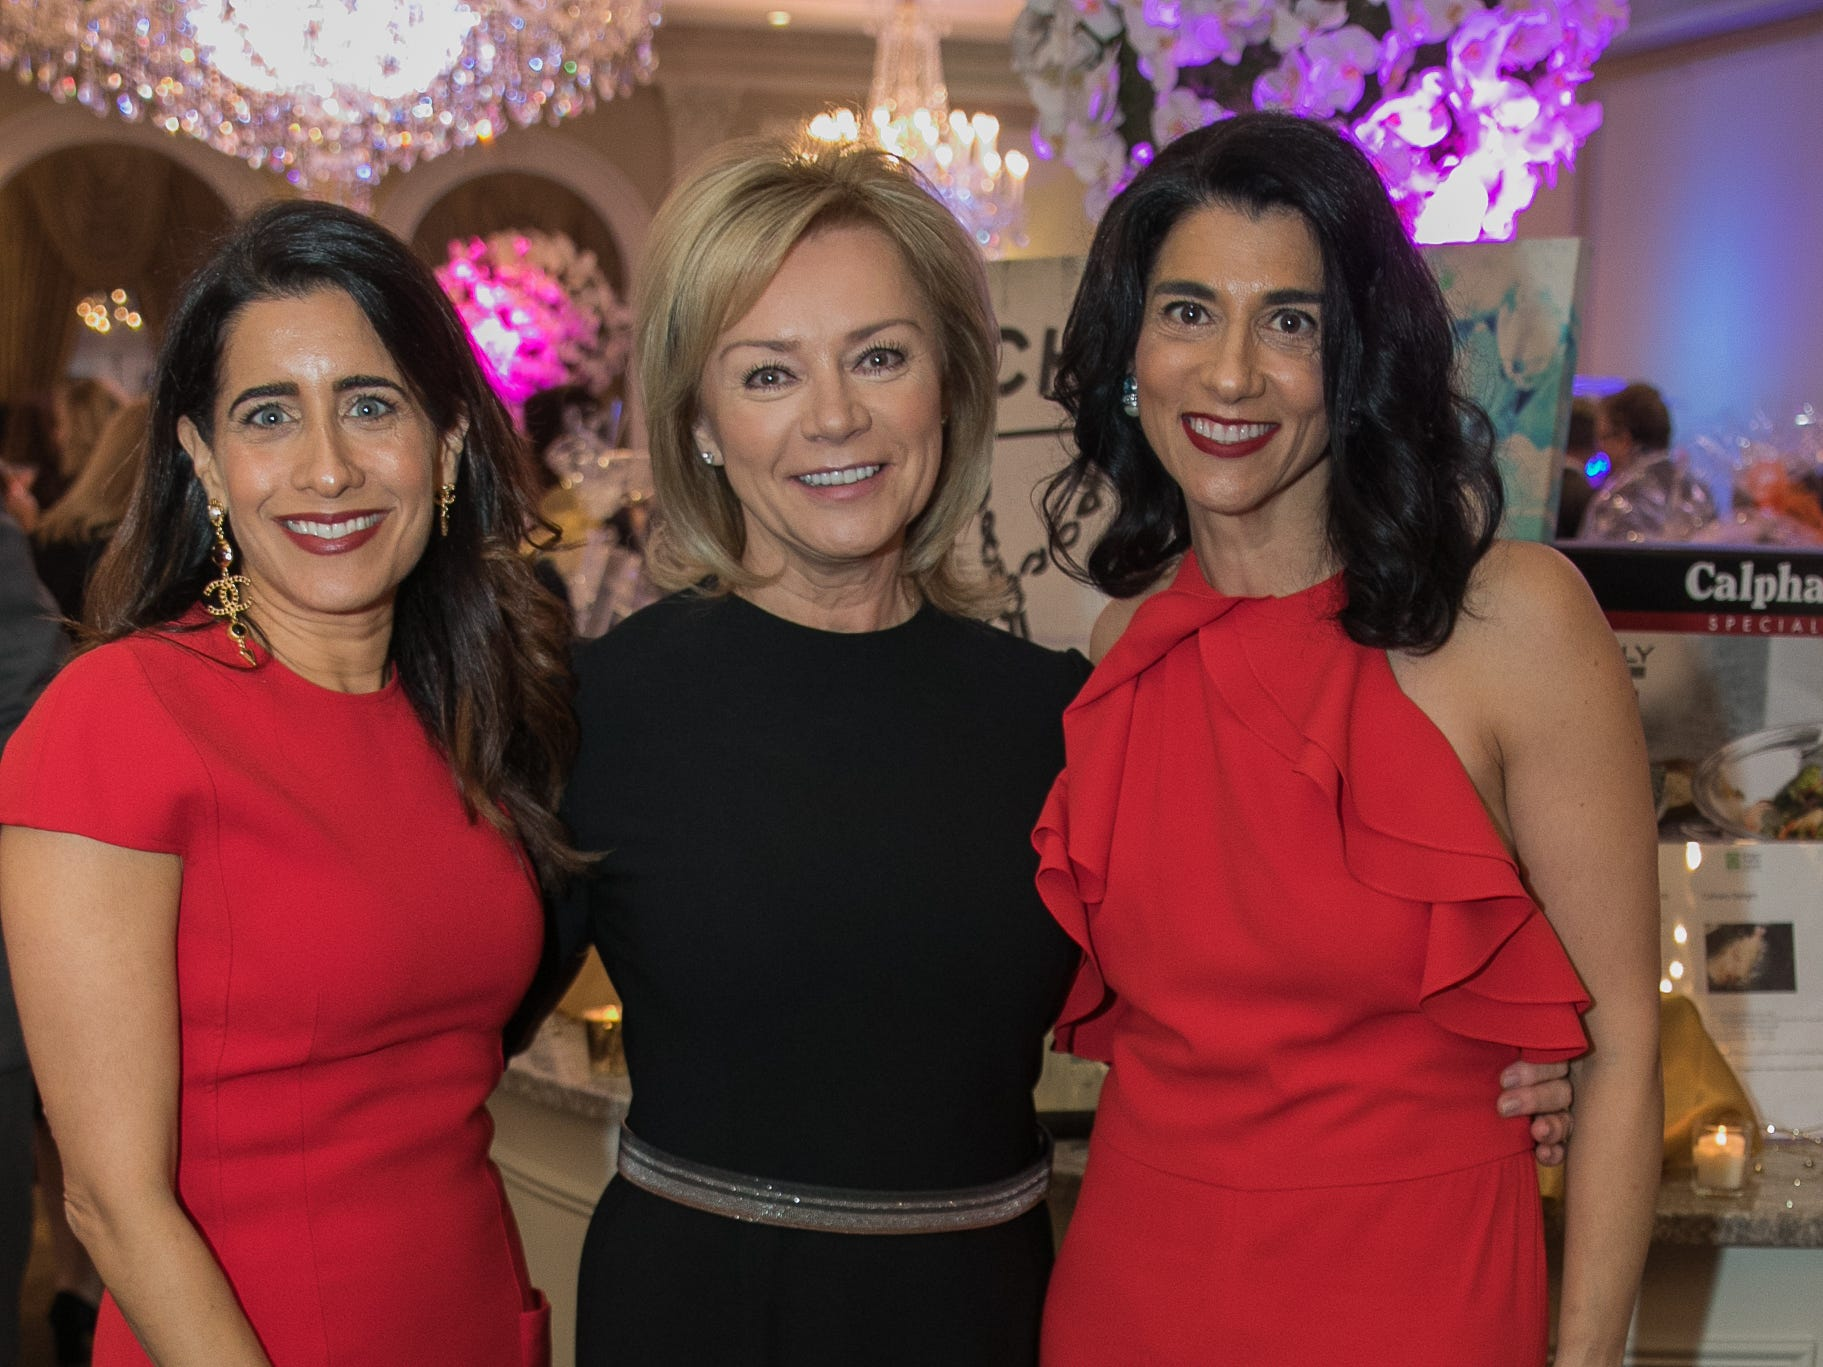 Aileen Agopran, Honoree Irina Kashan,  Ani Hovanessian. Bergen Family Center celebrated 120 years of service with dinner and a silent auction at Th e Rockleigh Country Club.11/1/2018